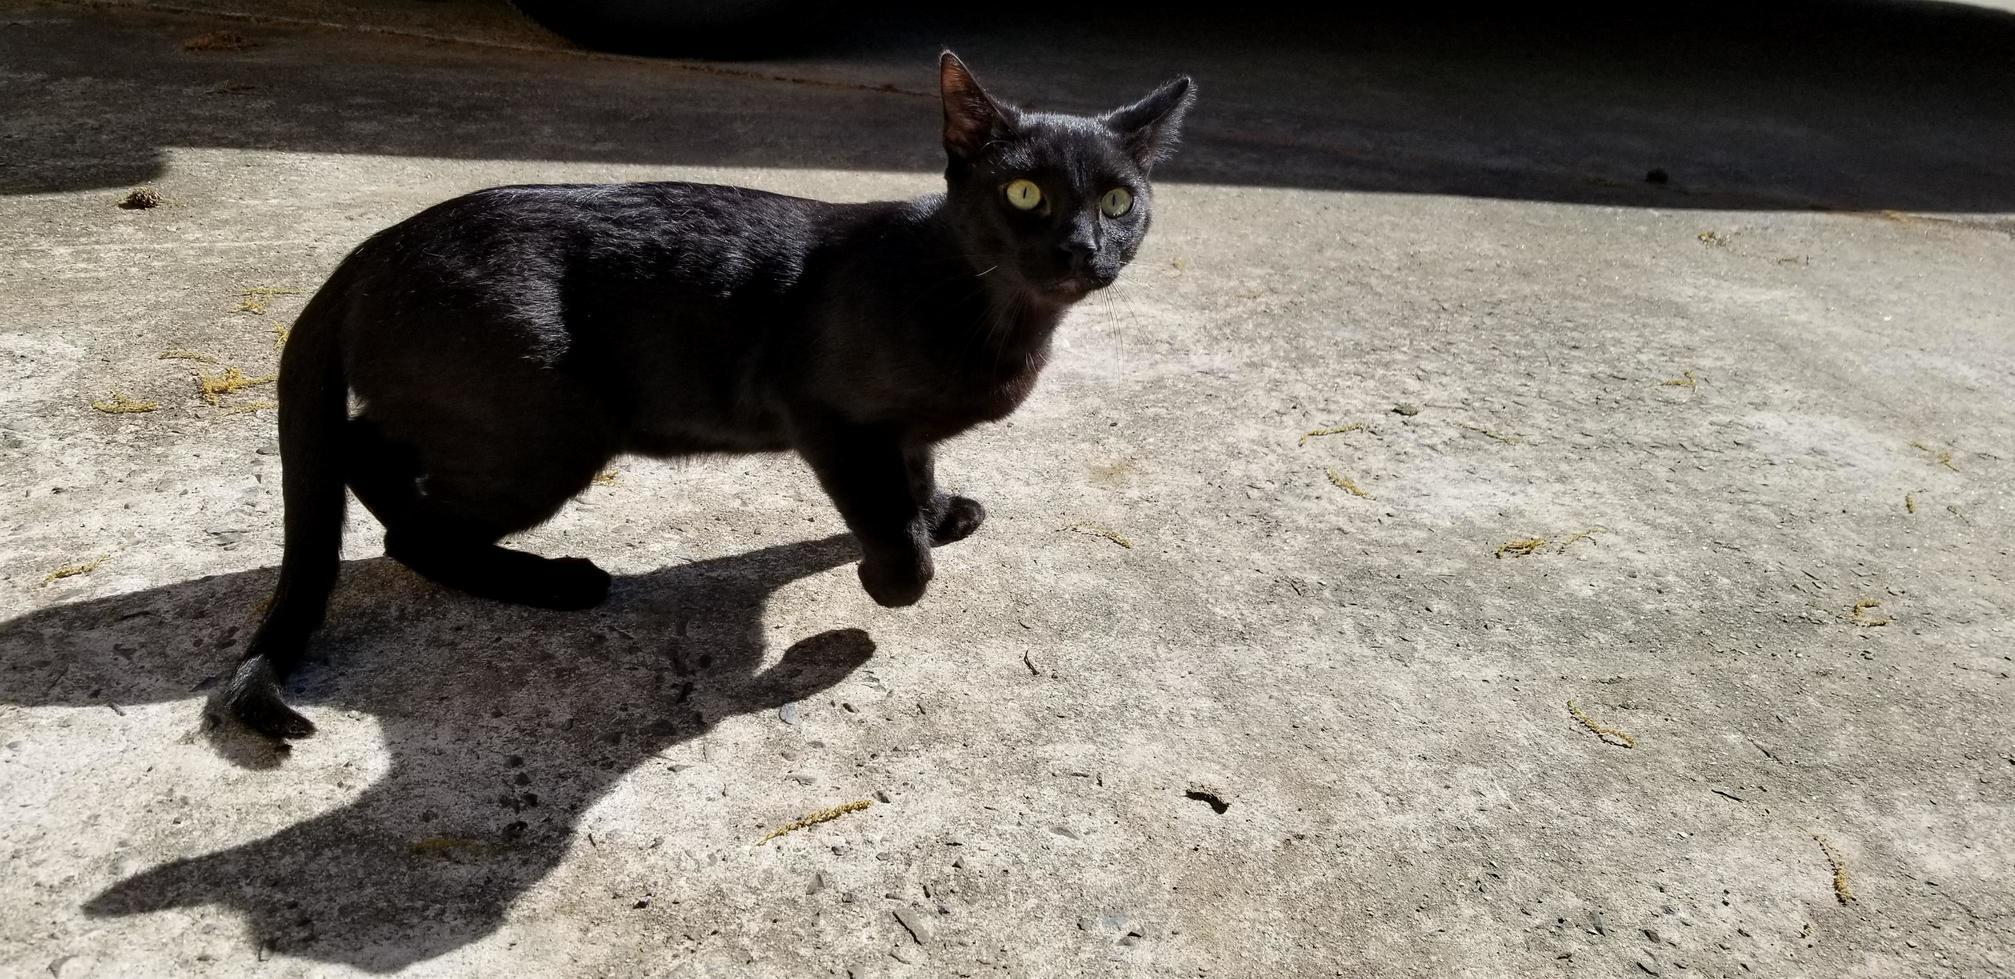 That cat shadow